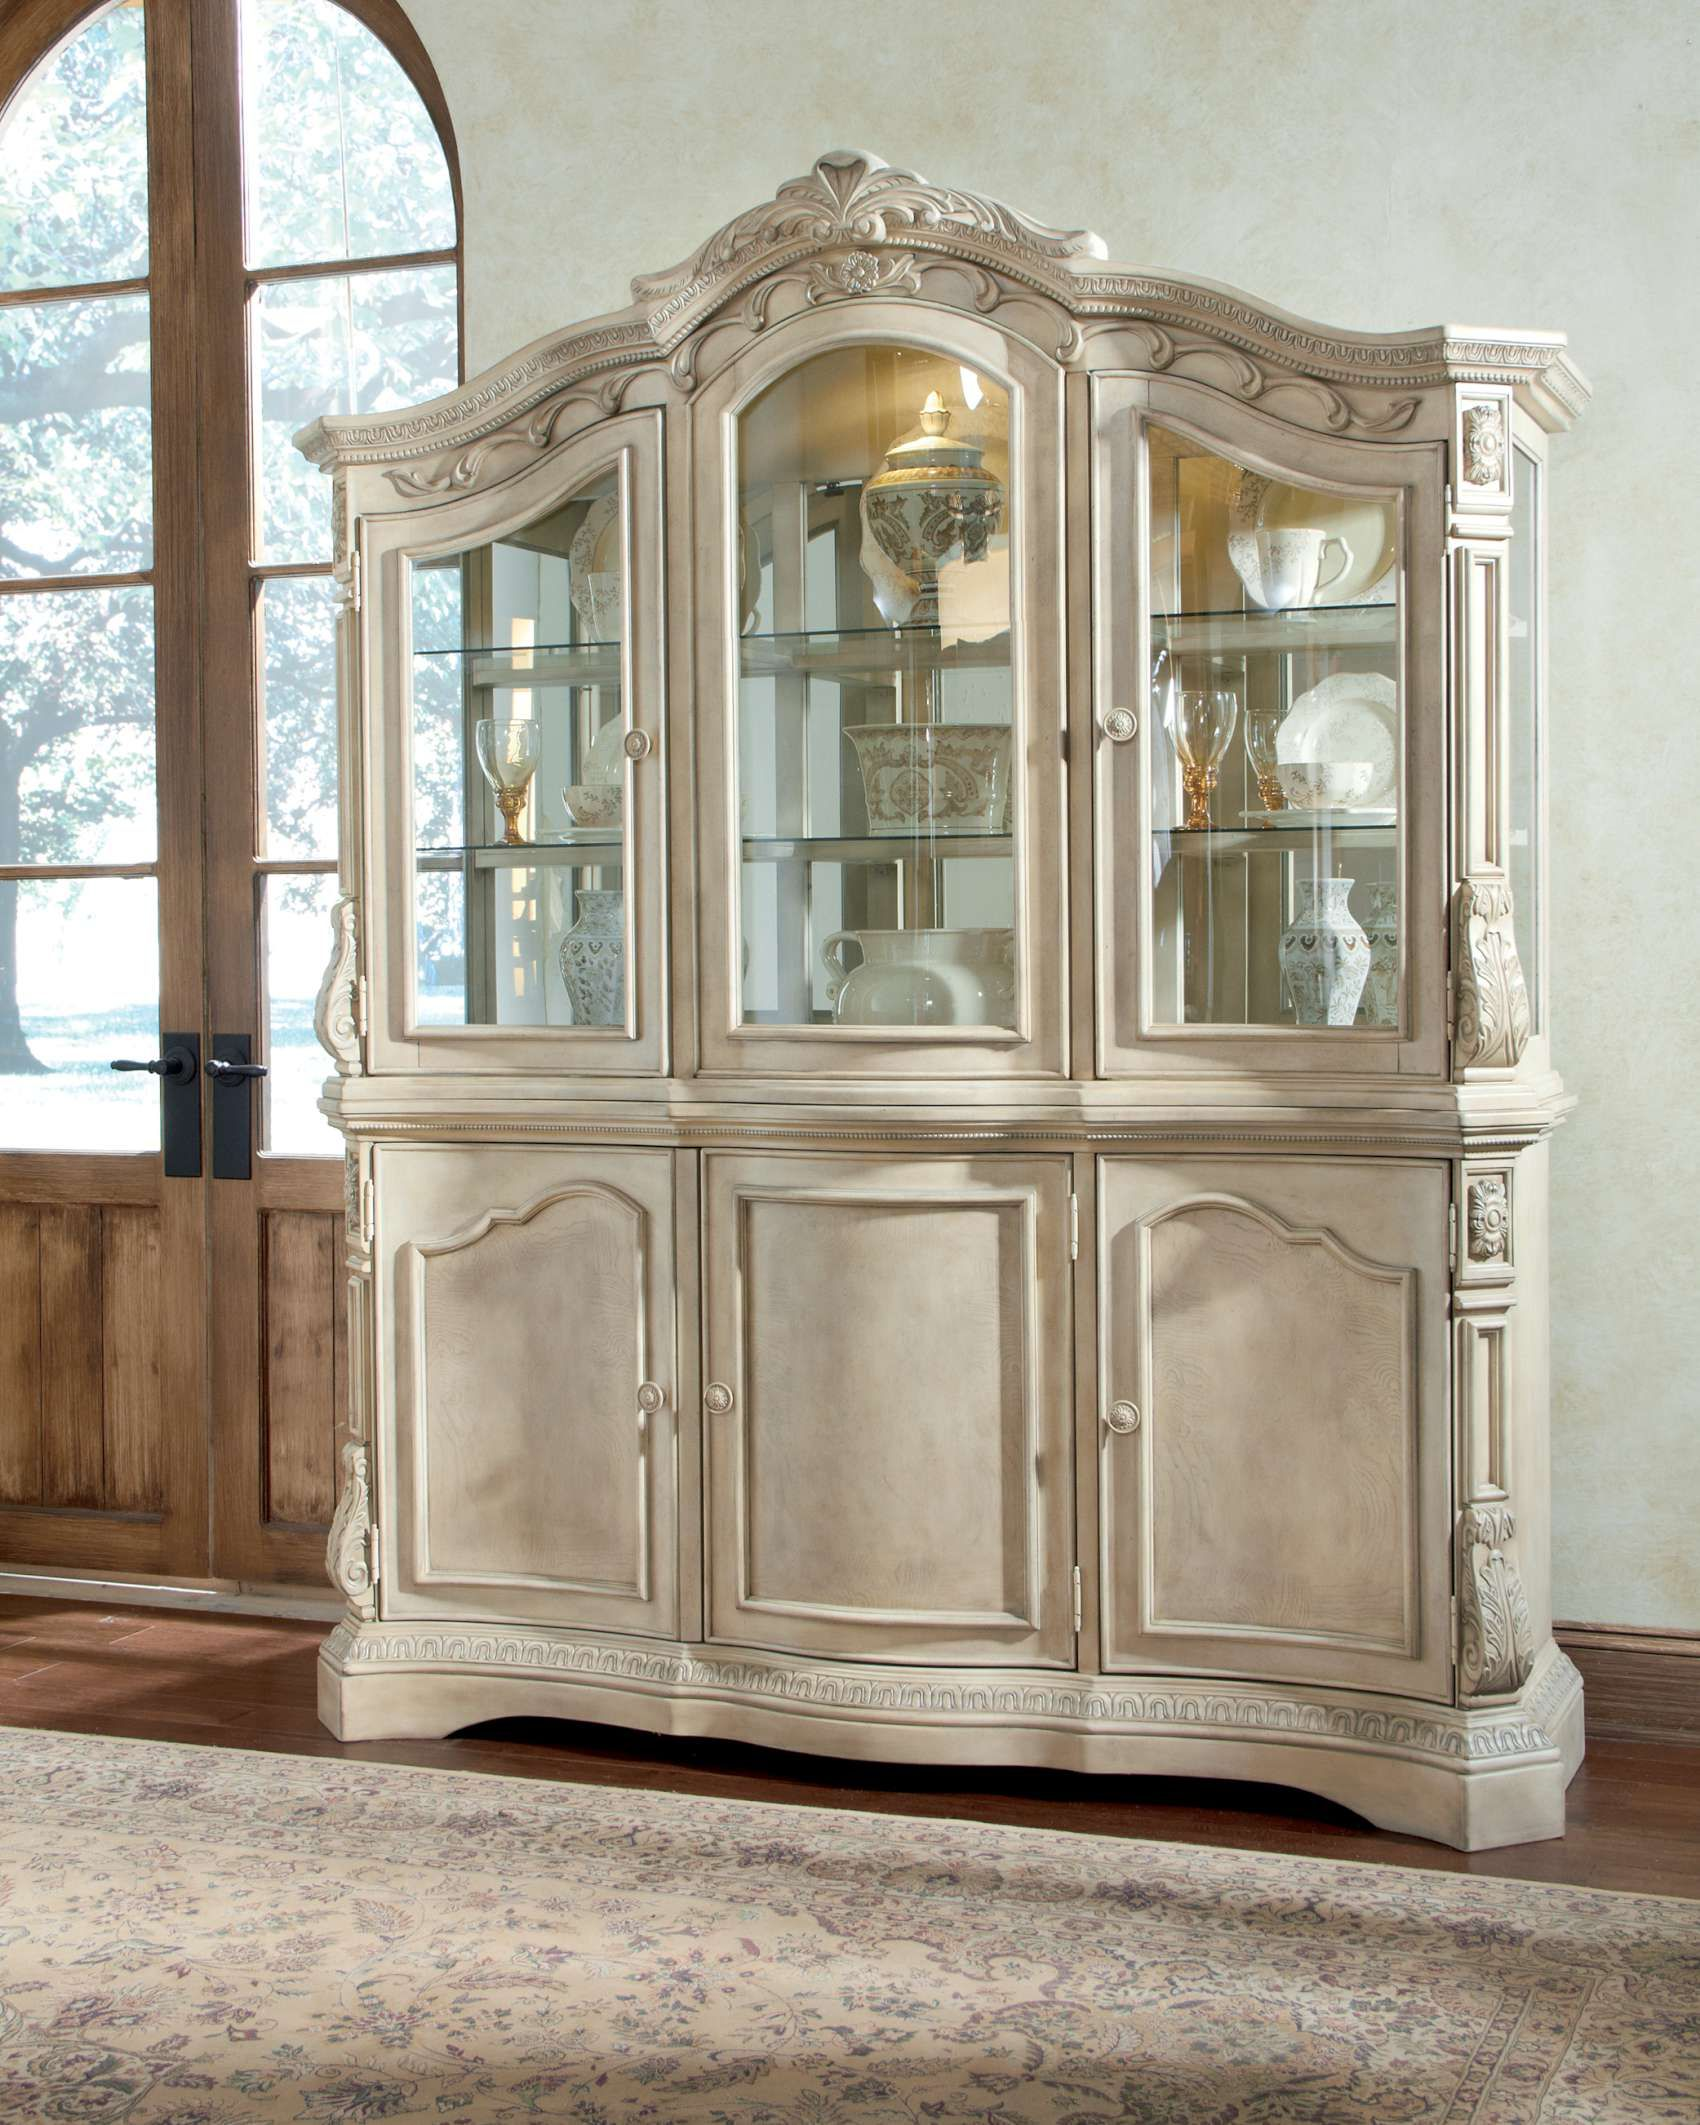 Ortanique Dining Room Buffet  Furniture  Pinterest  Dining Room Delectable Dining Room Cupboard Decorating Inspiration